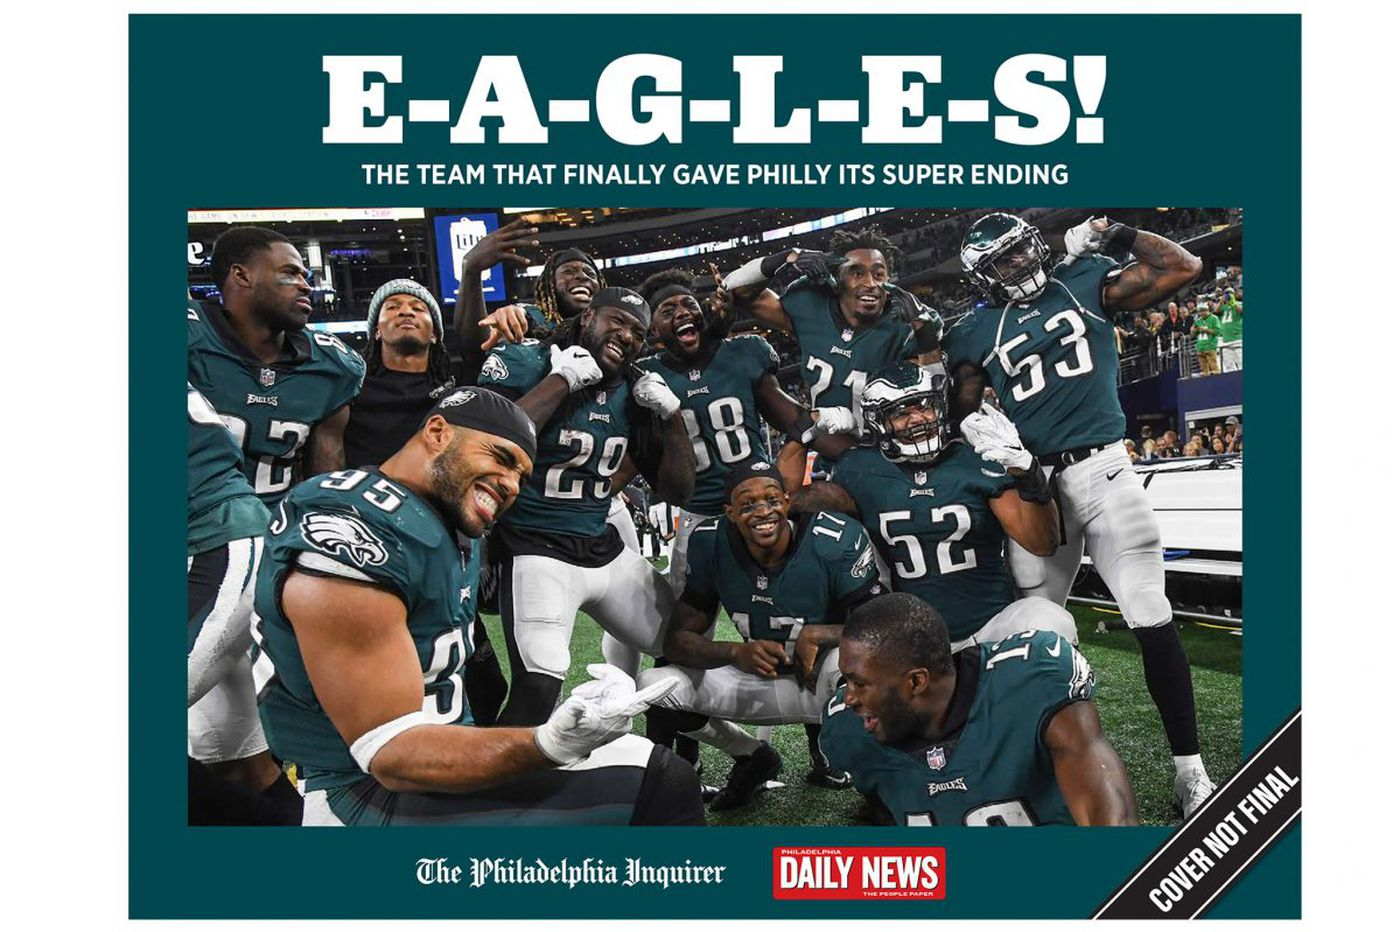 Relive the Philadelphia Eagles' Super Bowl-winning season with the Inquirer and Daily News' limited-edition commemorative book